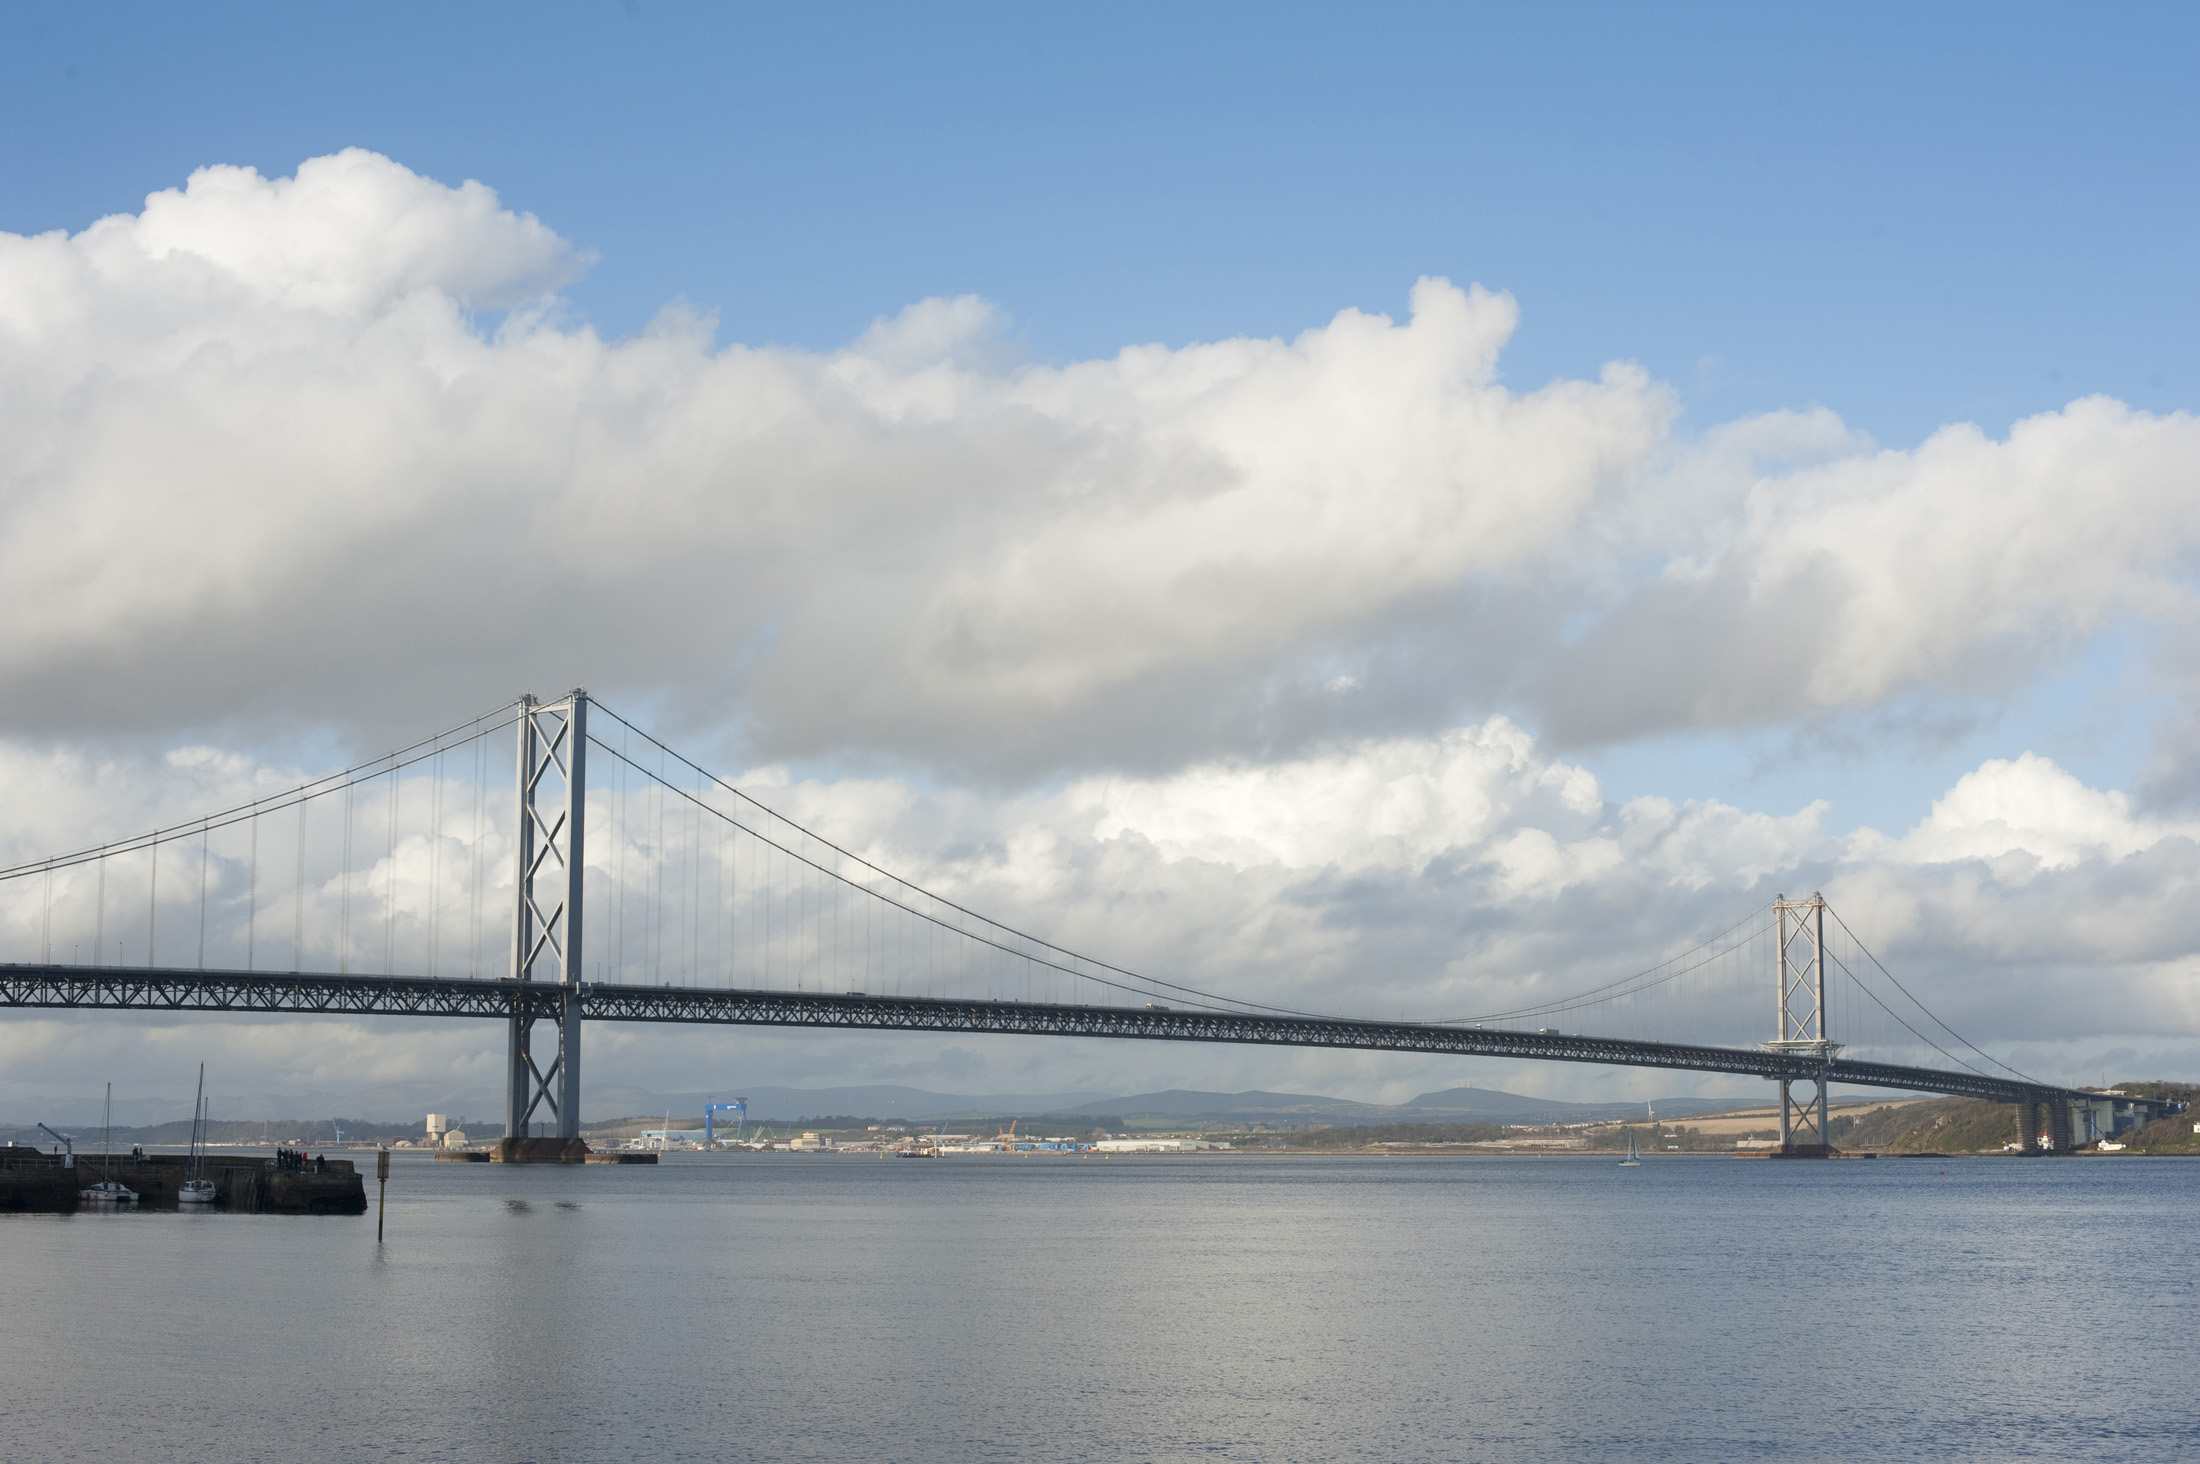 forth road bridge crossing the waters of the firth of forth between Fife and West Lothian, Scotland